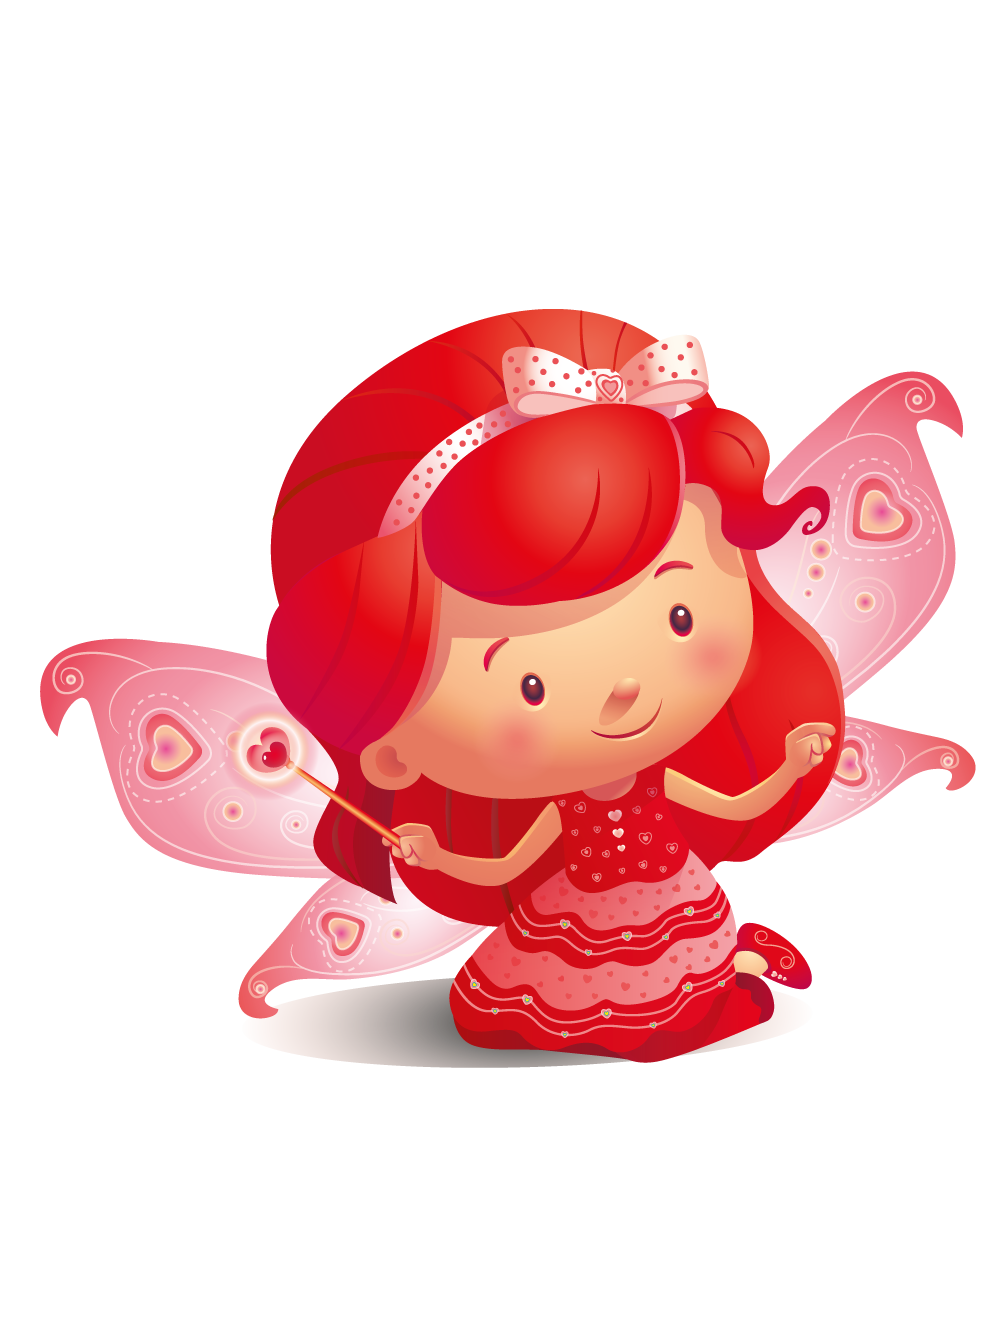 Colour fairies ruby red. Gnome clipart color